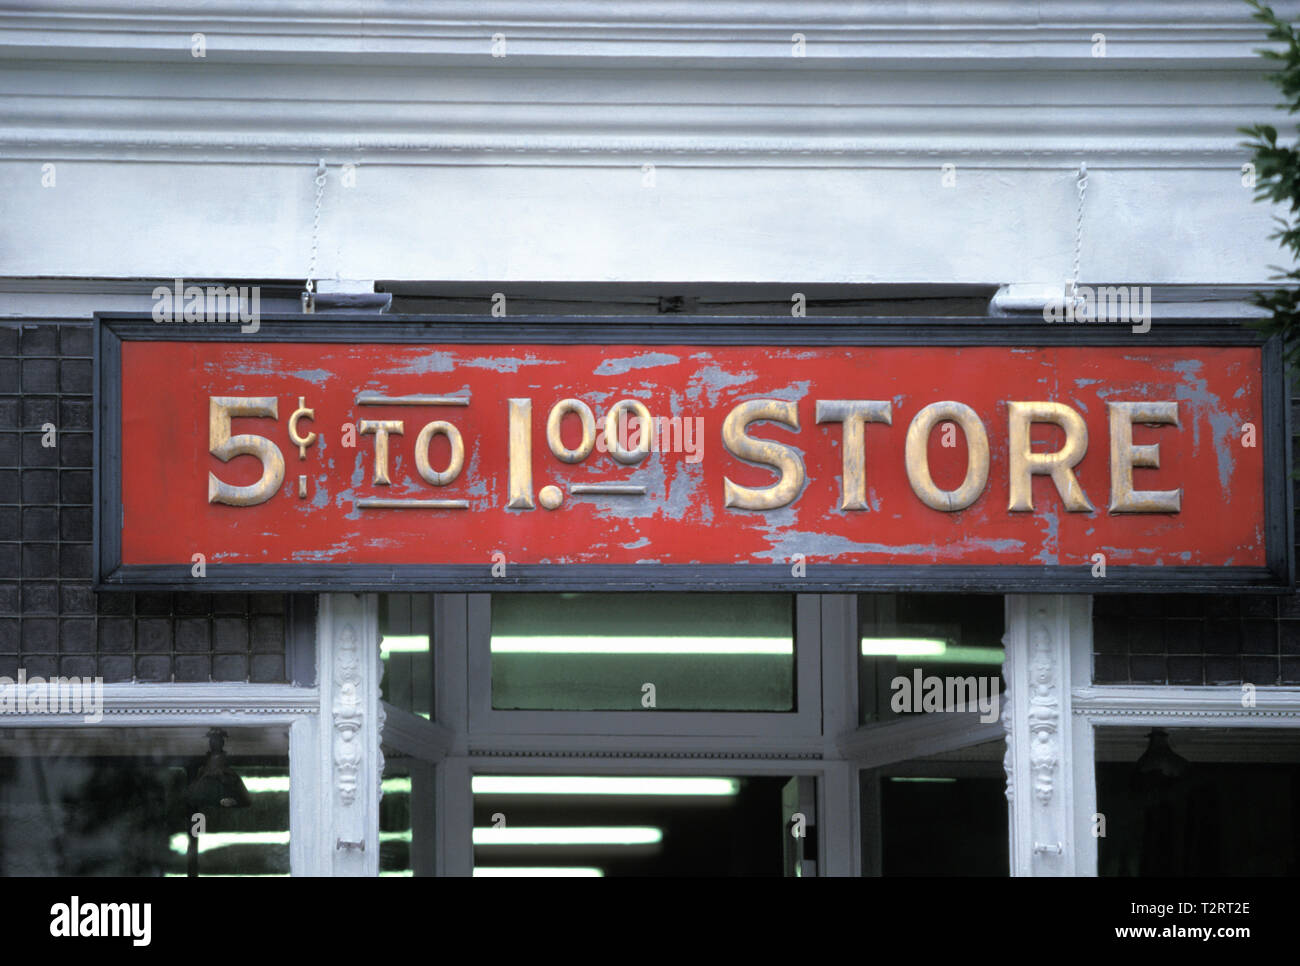 Antique general store sign on an old building - Stock Image